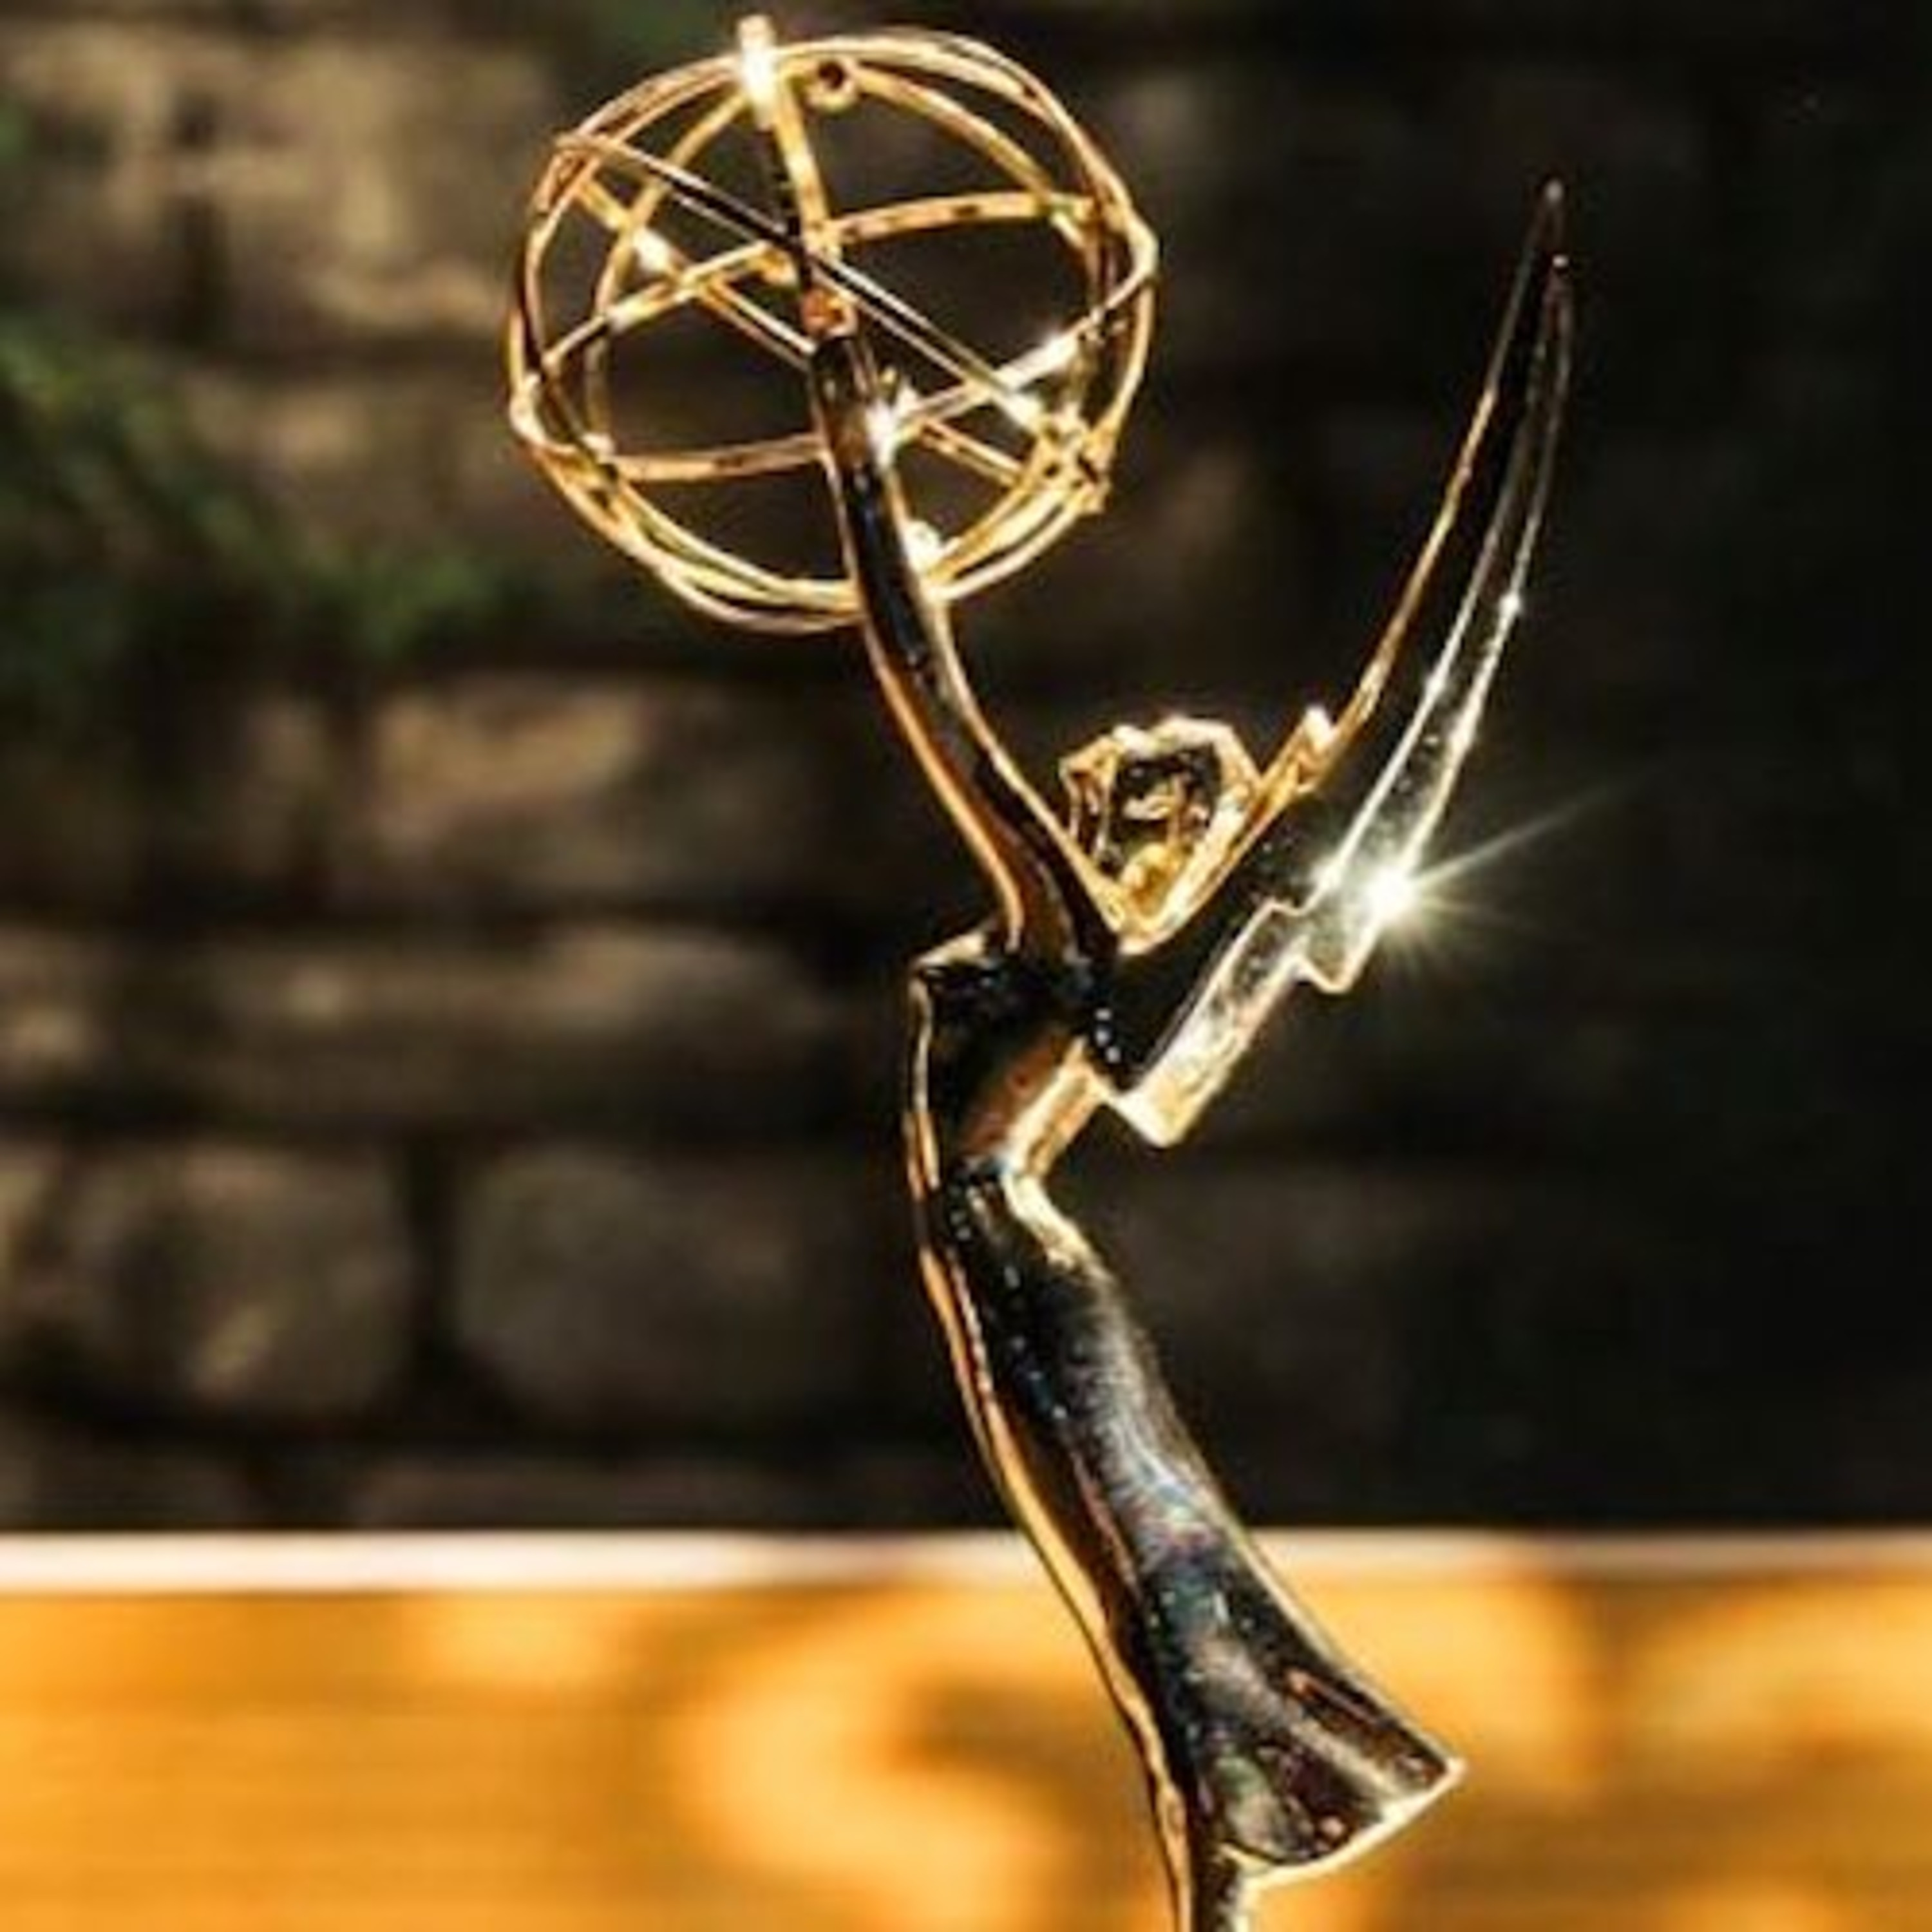 Emmy Awards 2018 - Predictions and Opinions Part 2 (Drama)